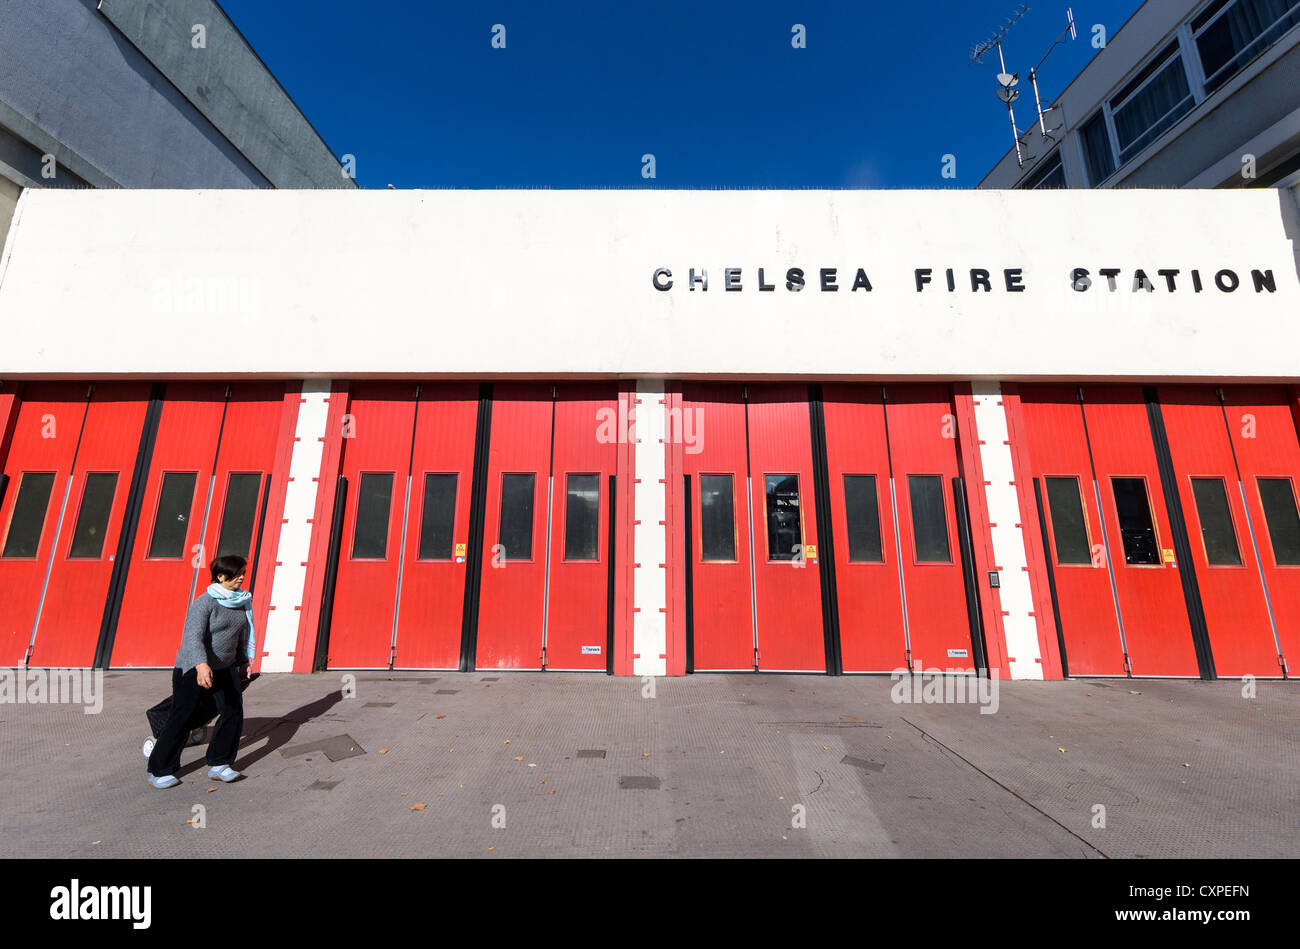 A woman walking past the red doors of Chelsea Fire Station in London's Kings Road - Stock Image